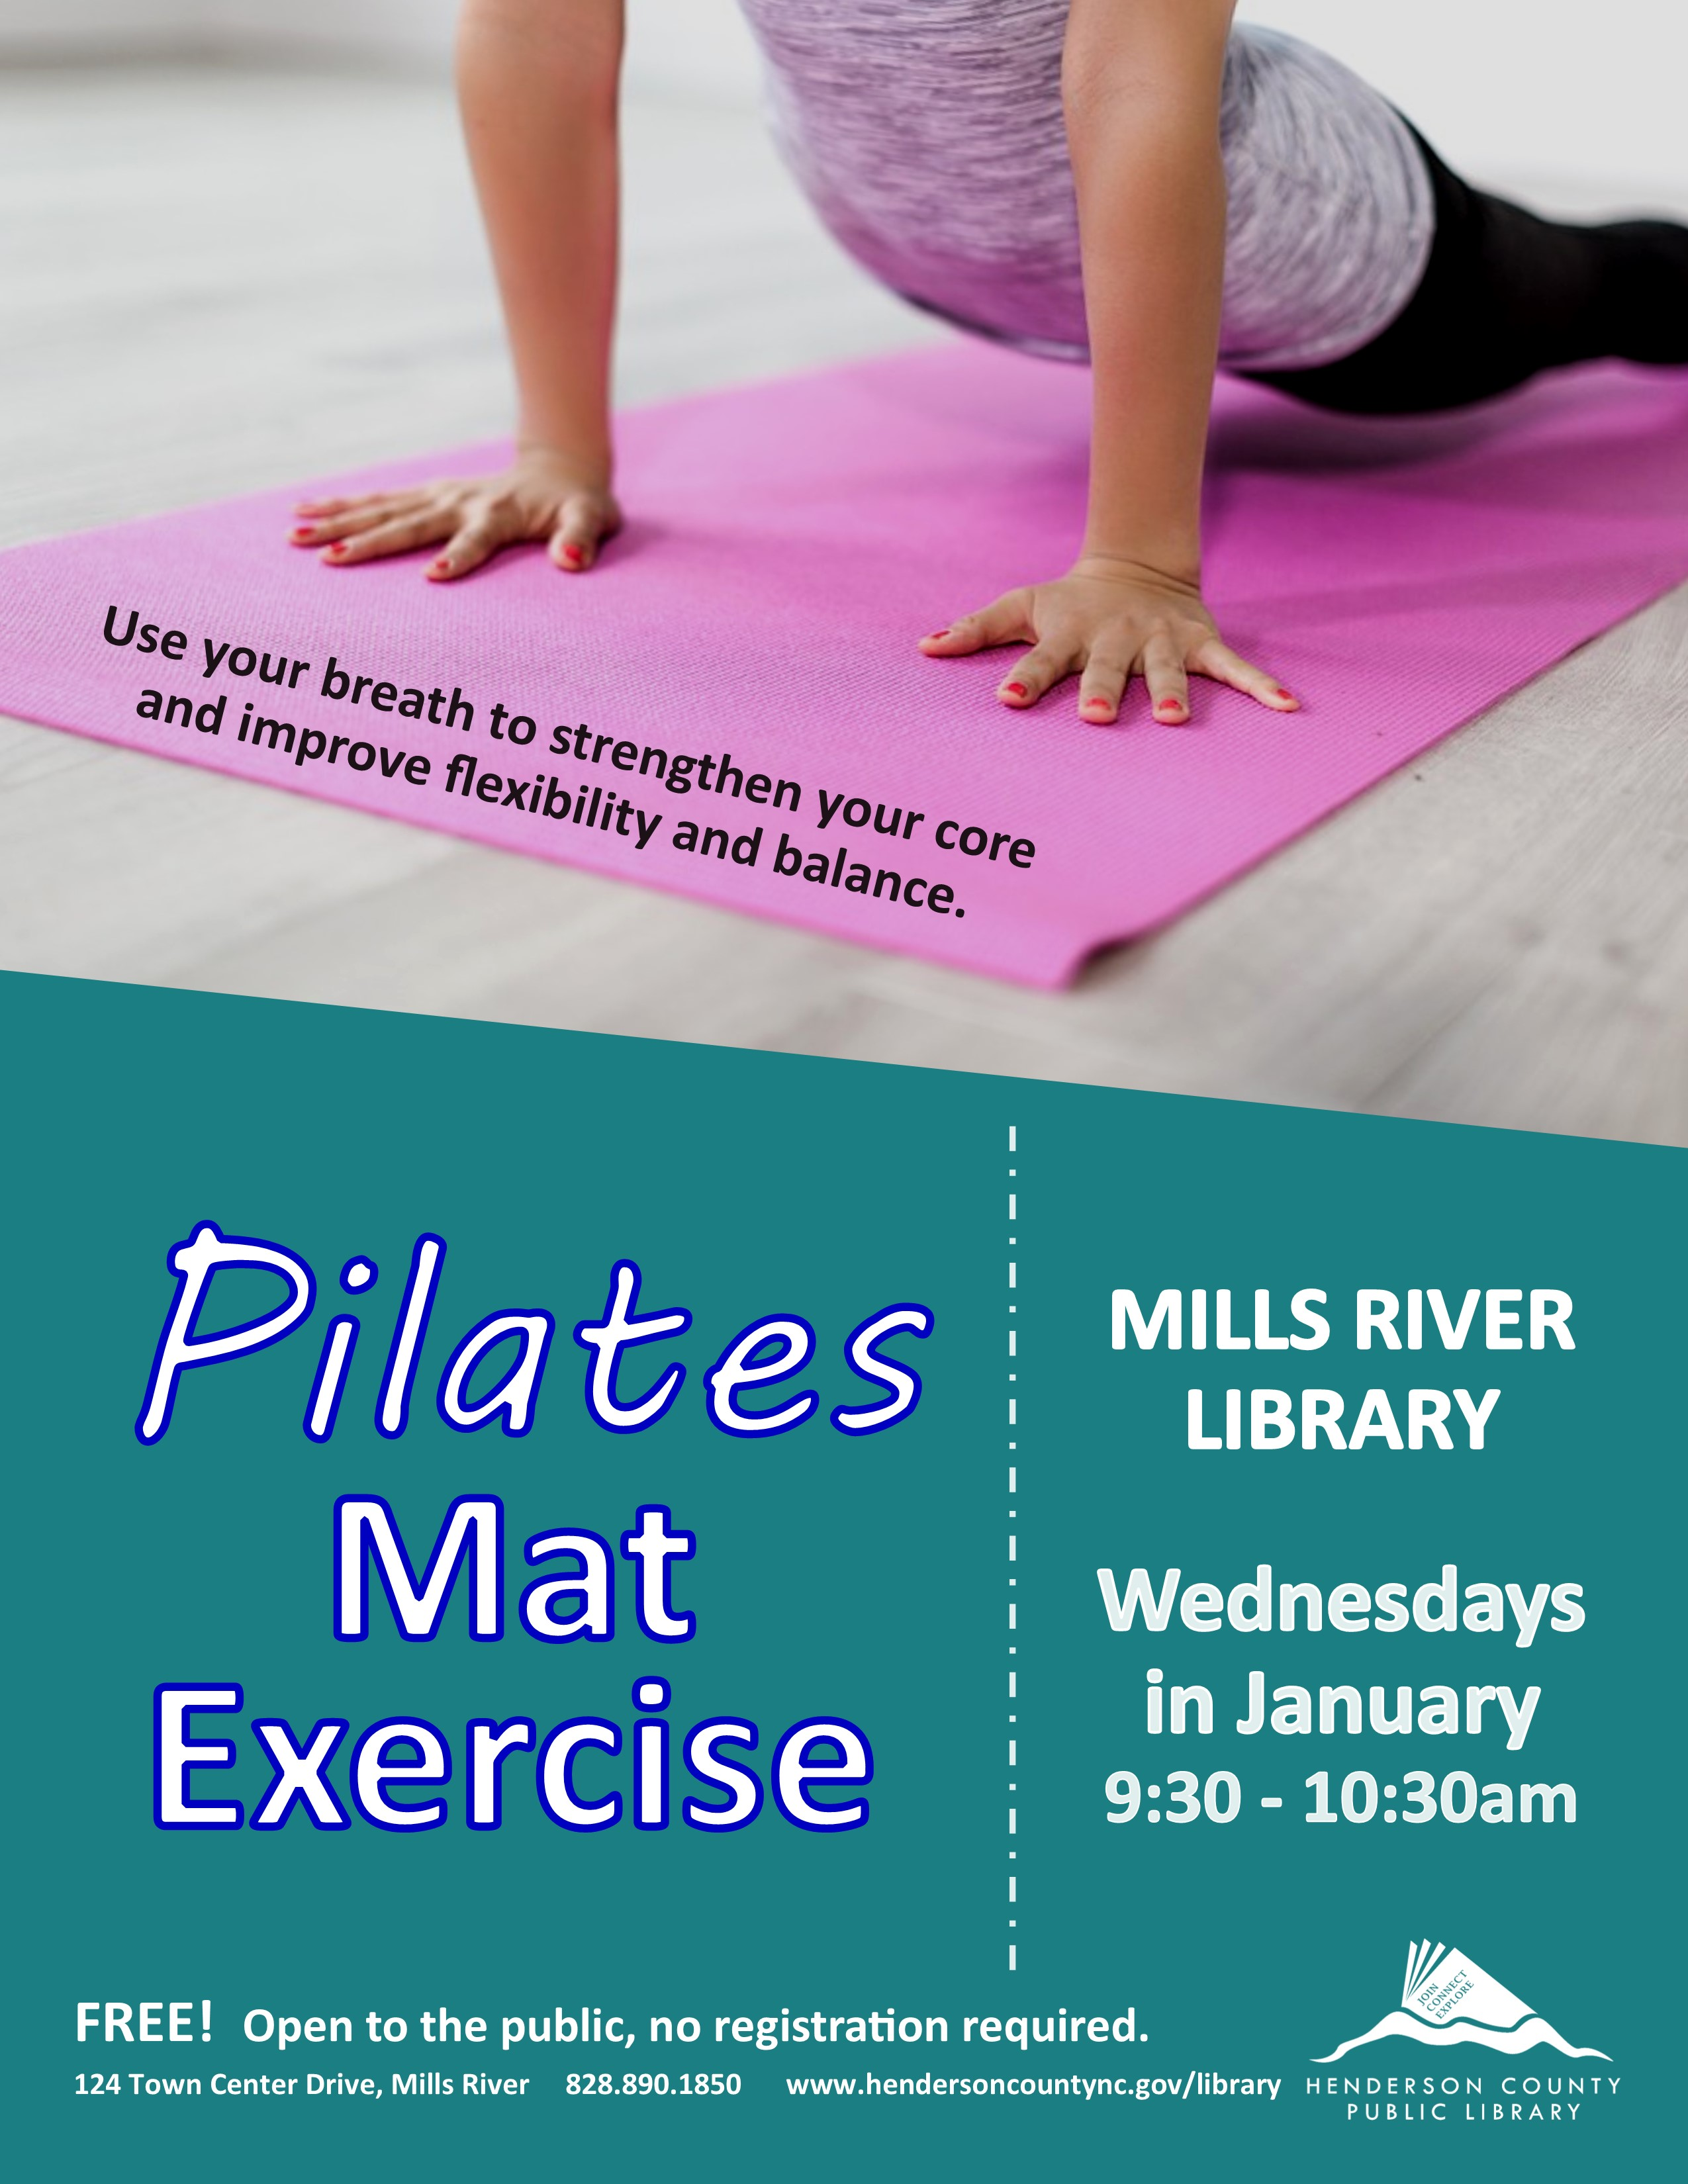 Pilates Mat Exercise